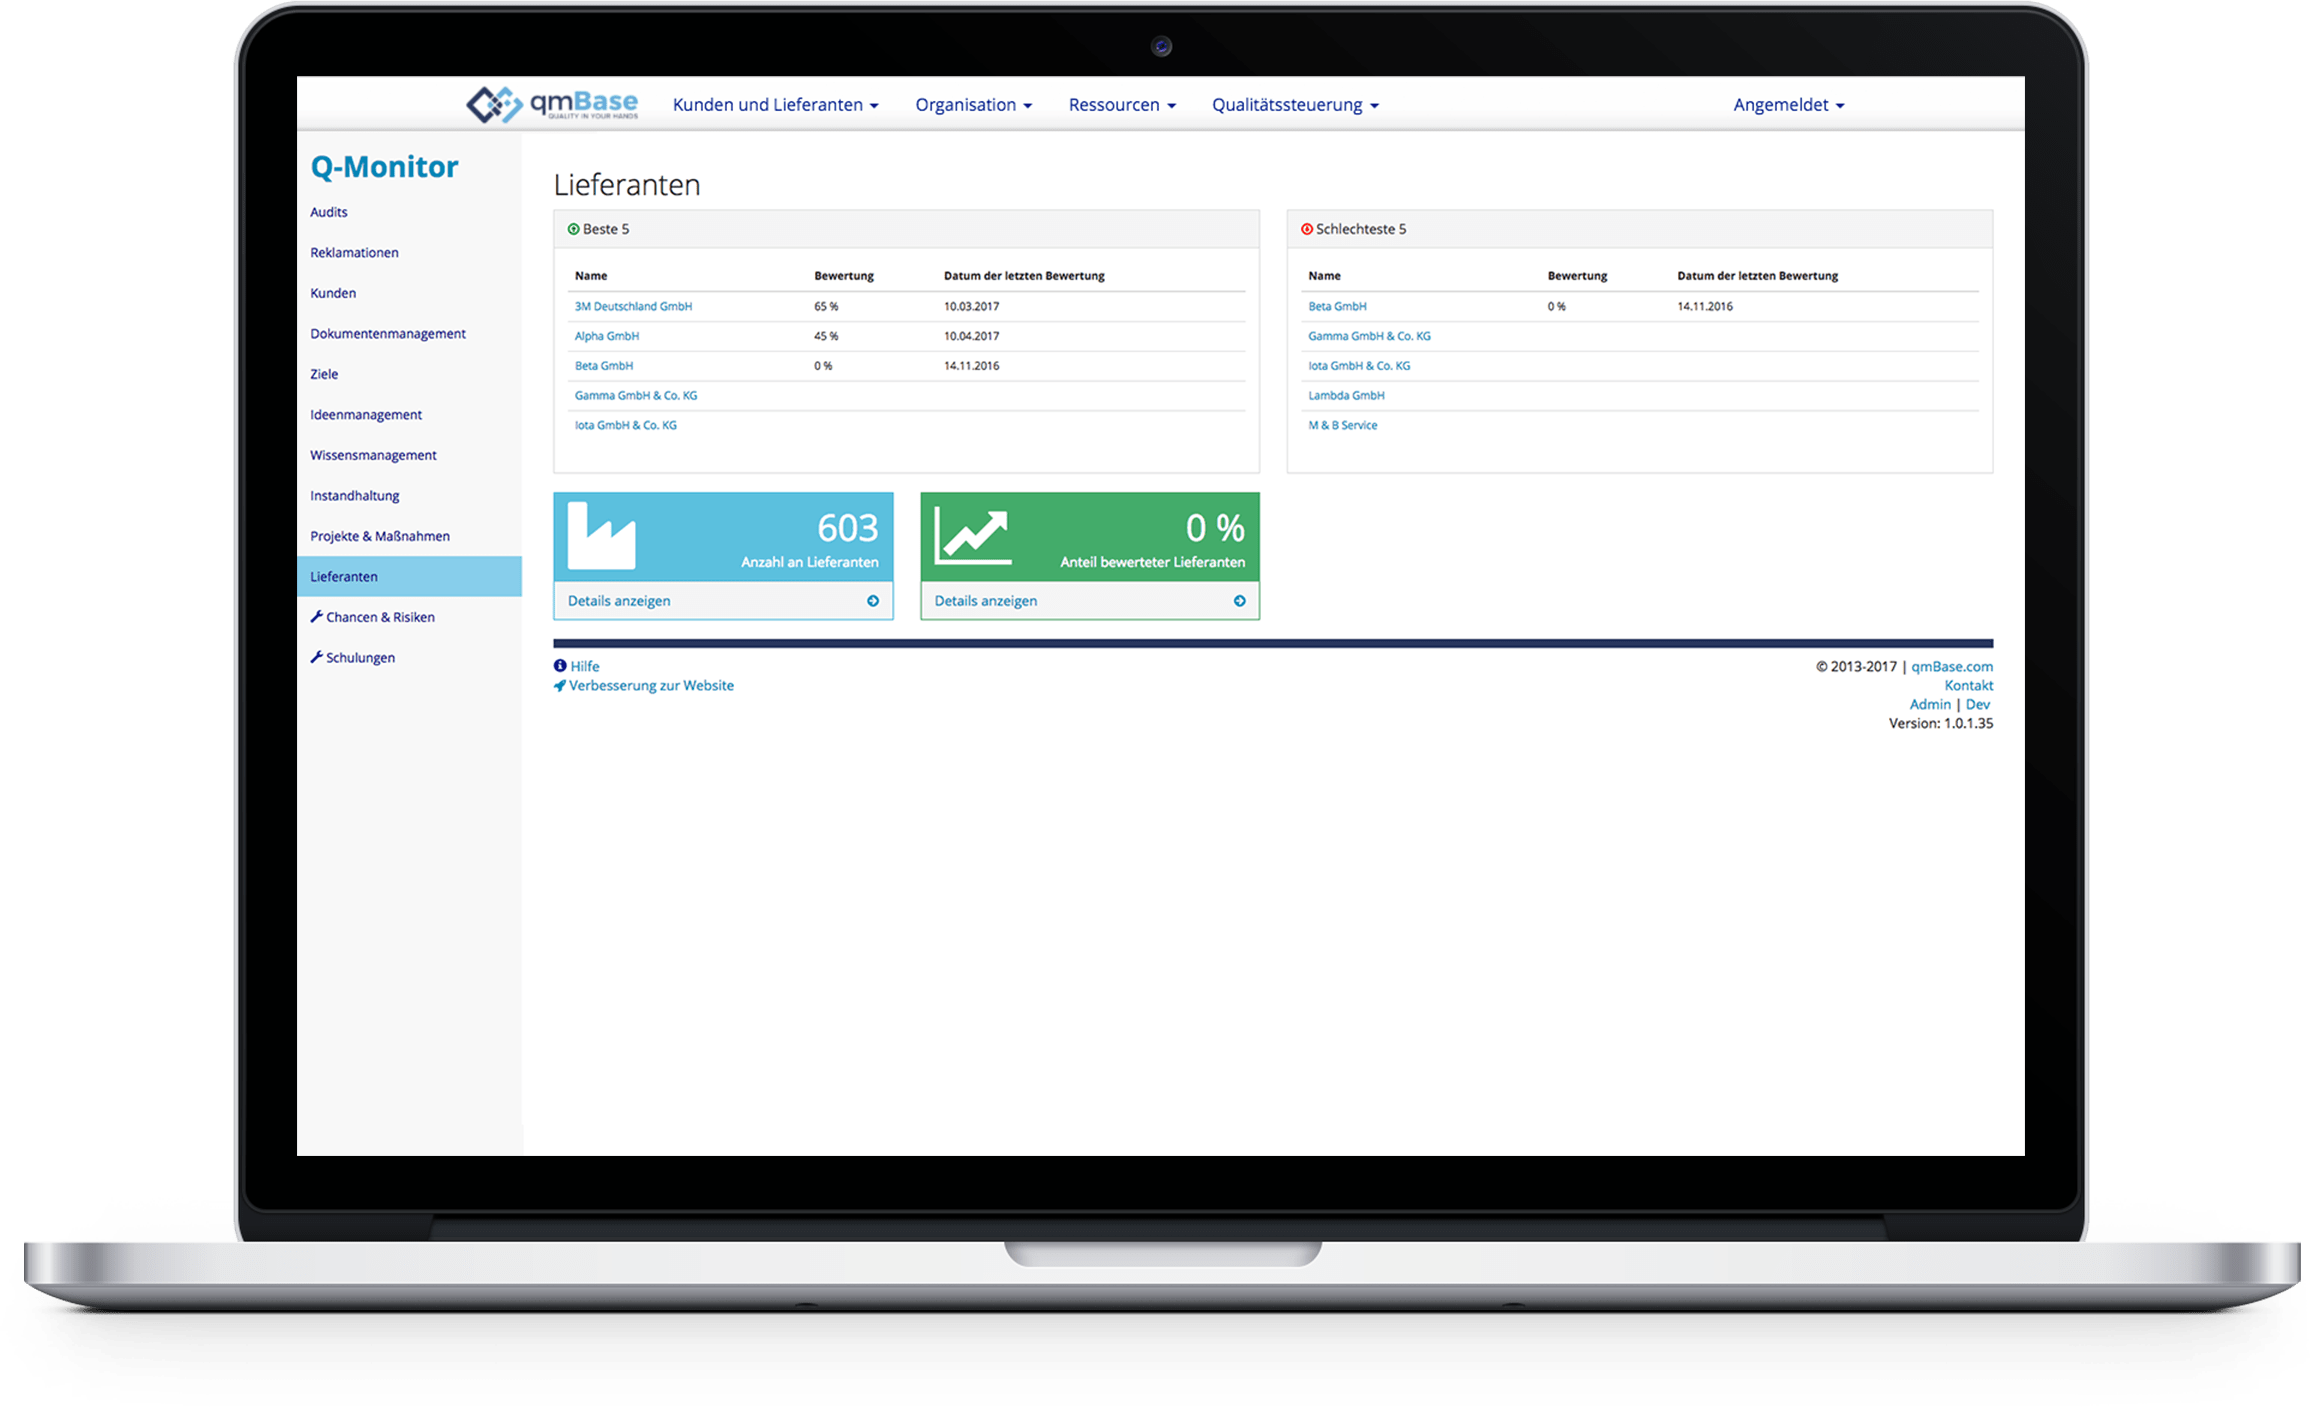 Evaluation of the supplier management in the quality dashboard